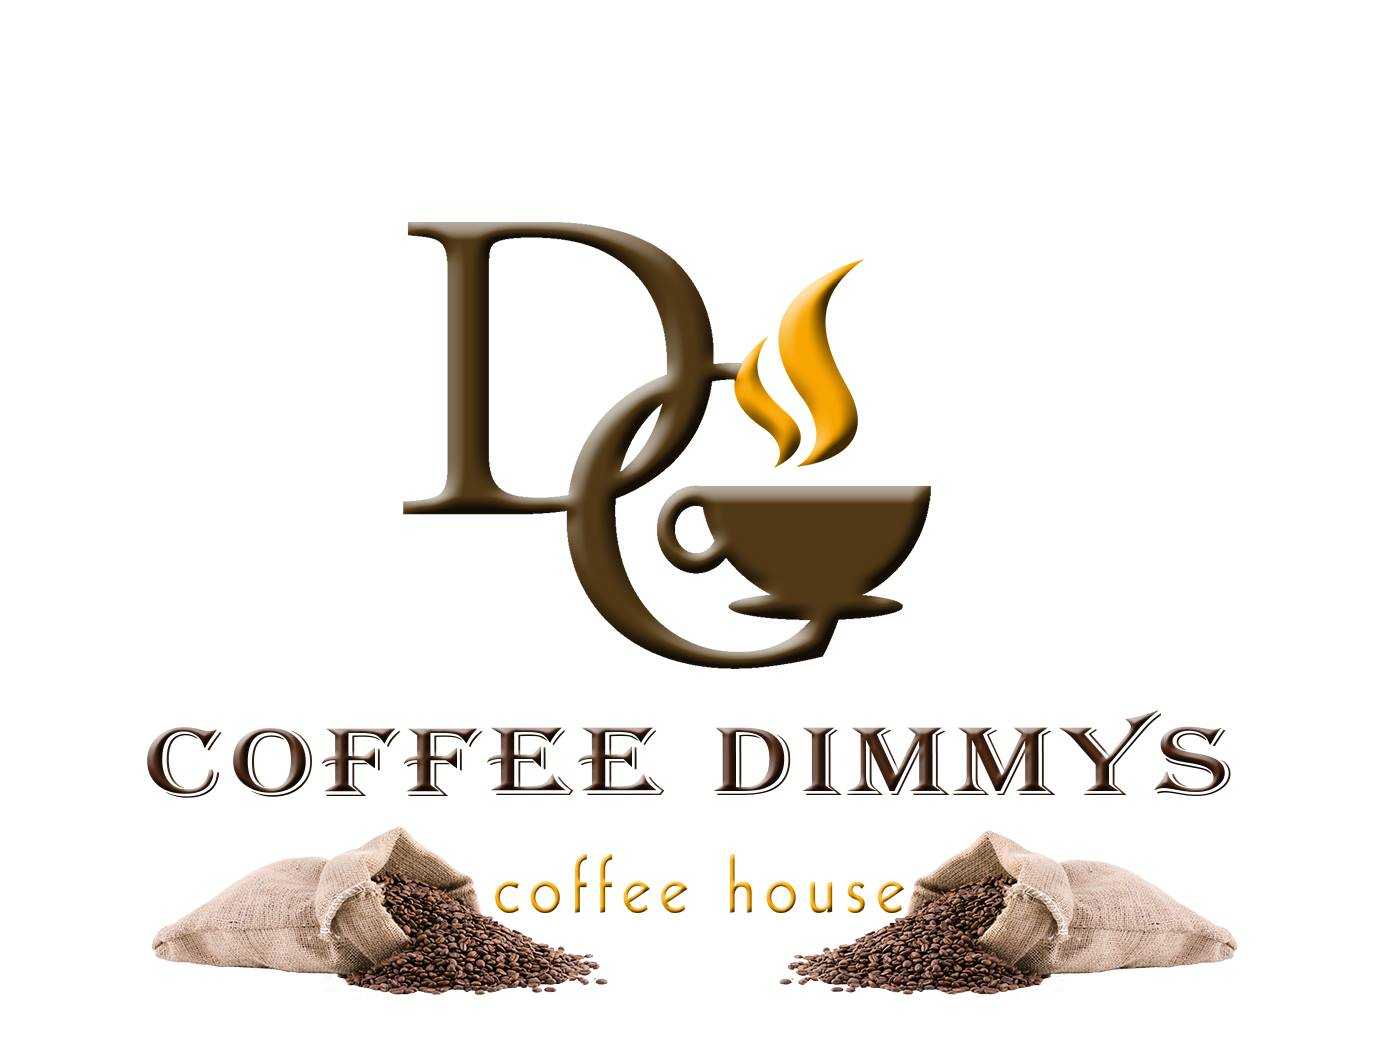 COFFE DIMMYS